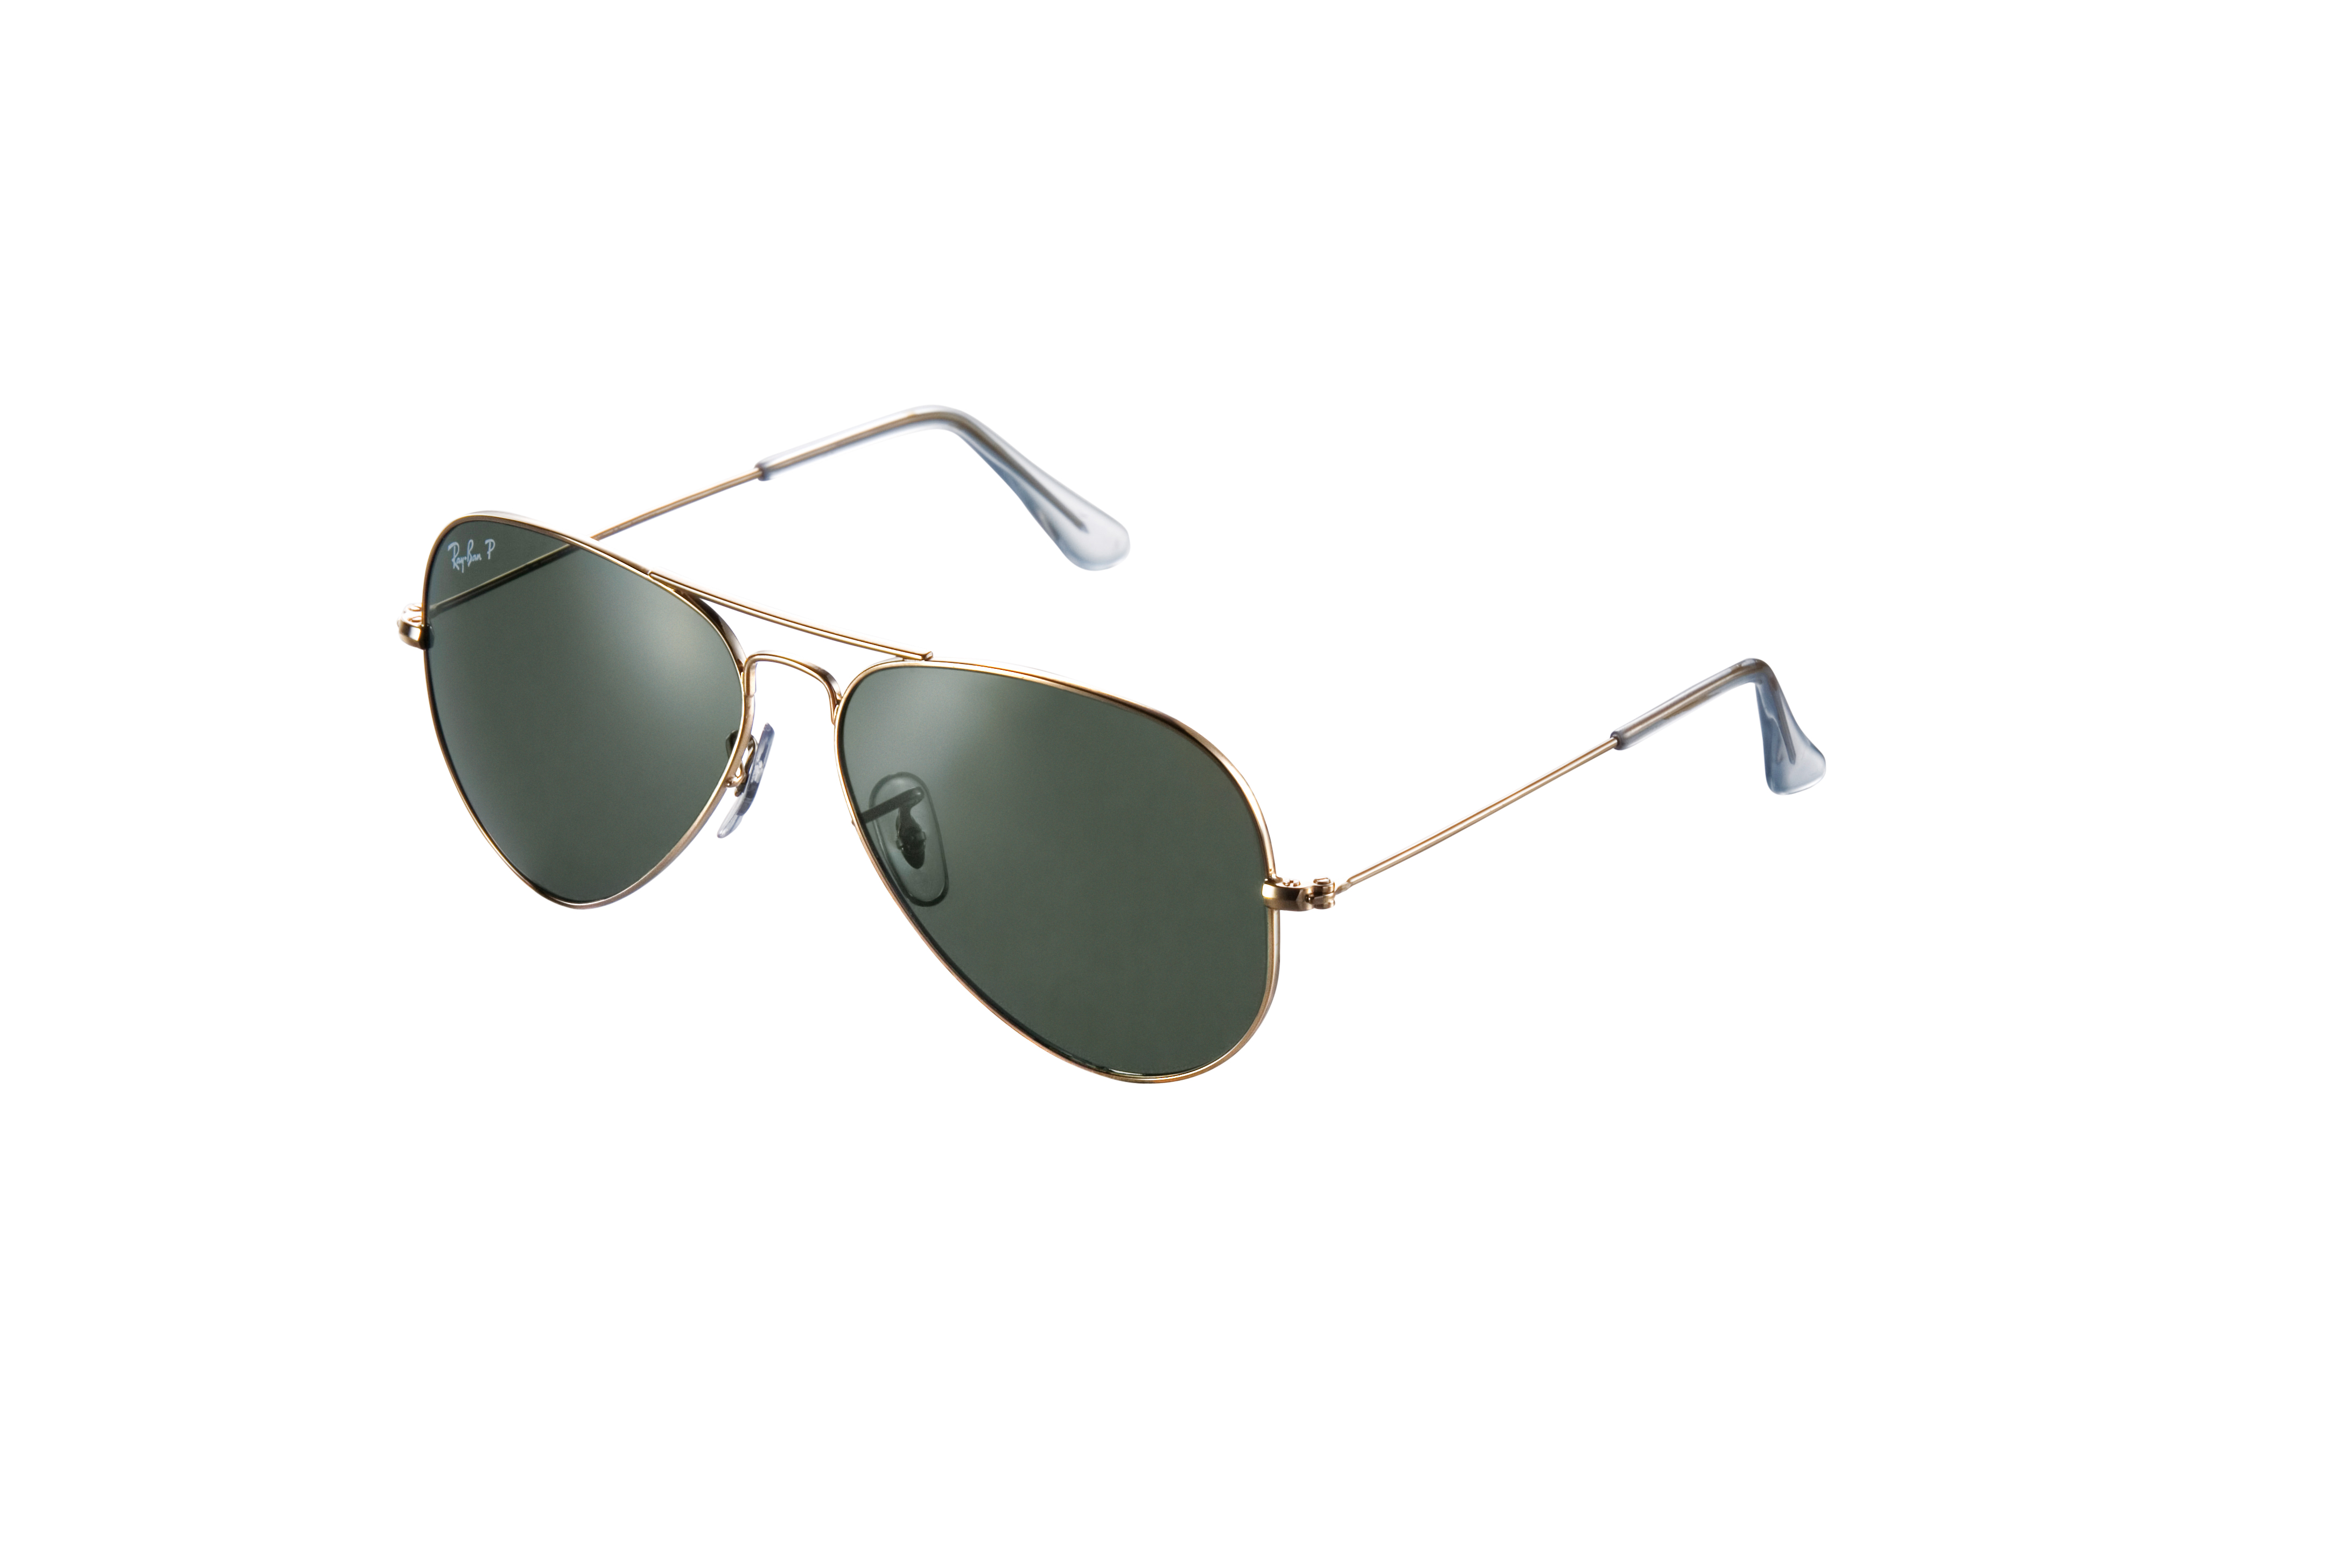 £170 Ray Ban at Sunglass Hut